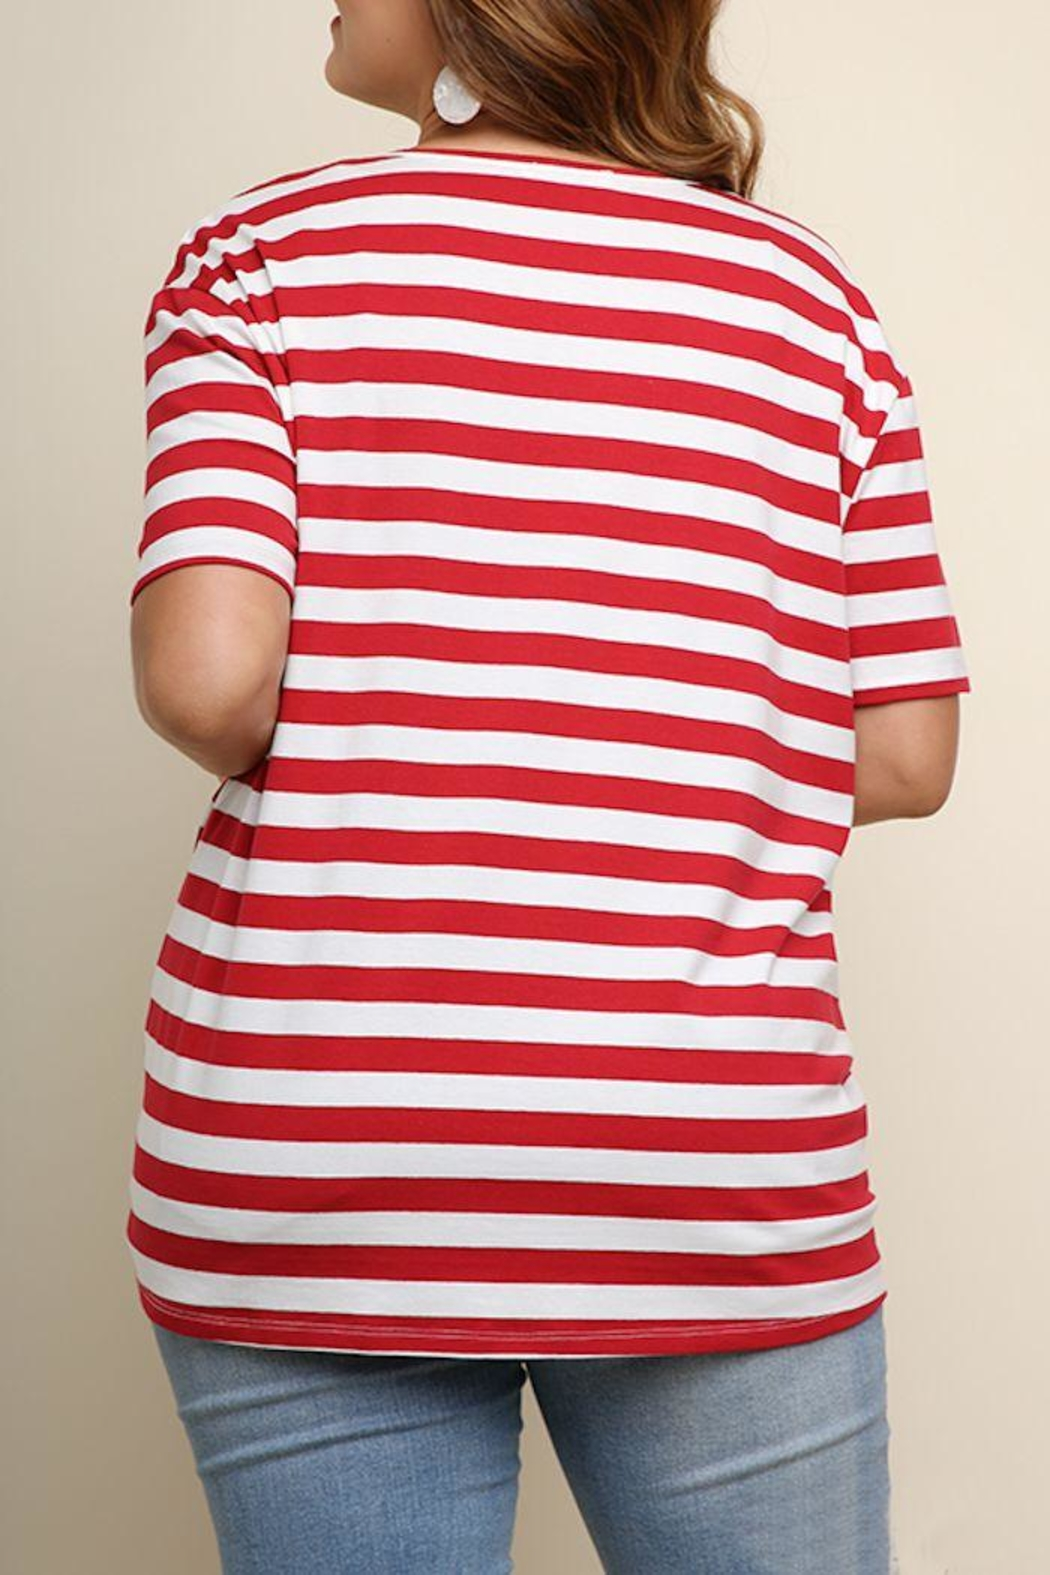 Umgee USA Striped Knotted Top - Front Full Image